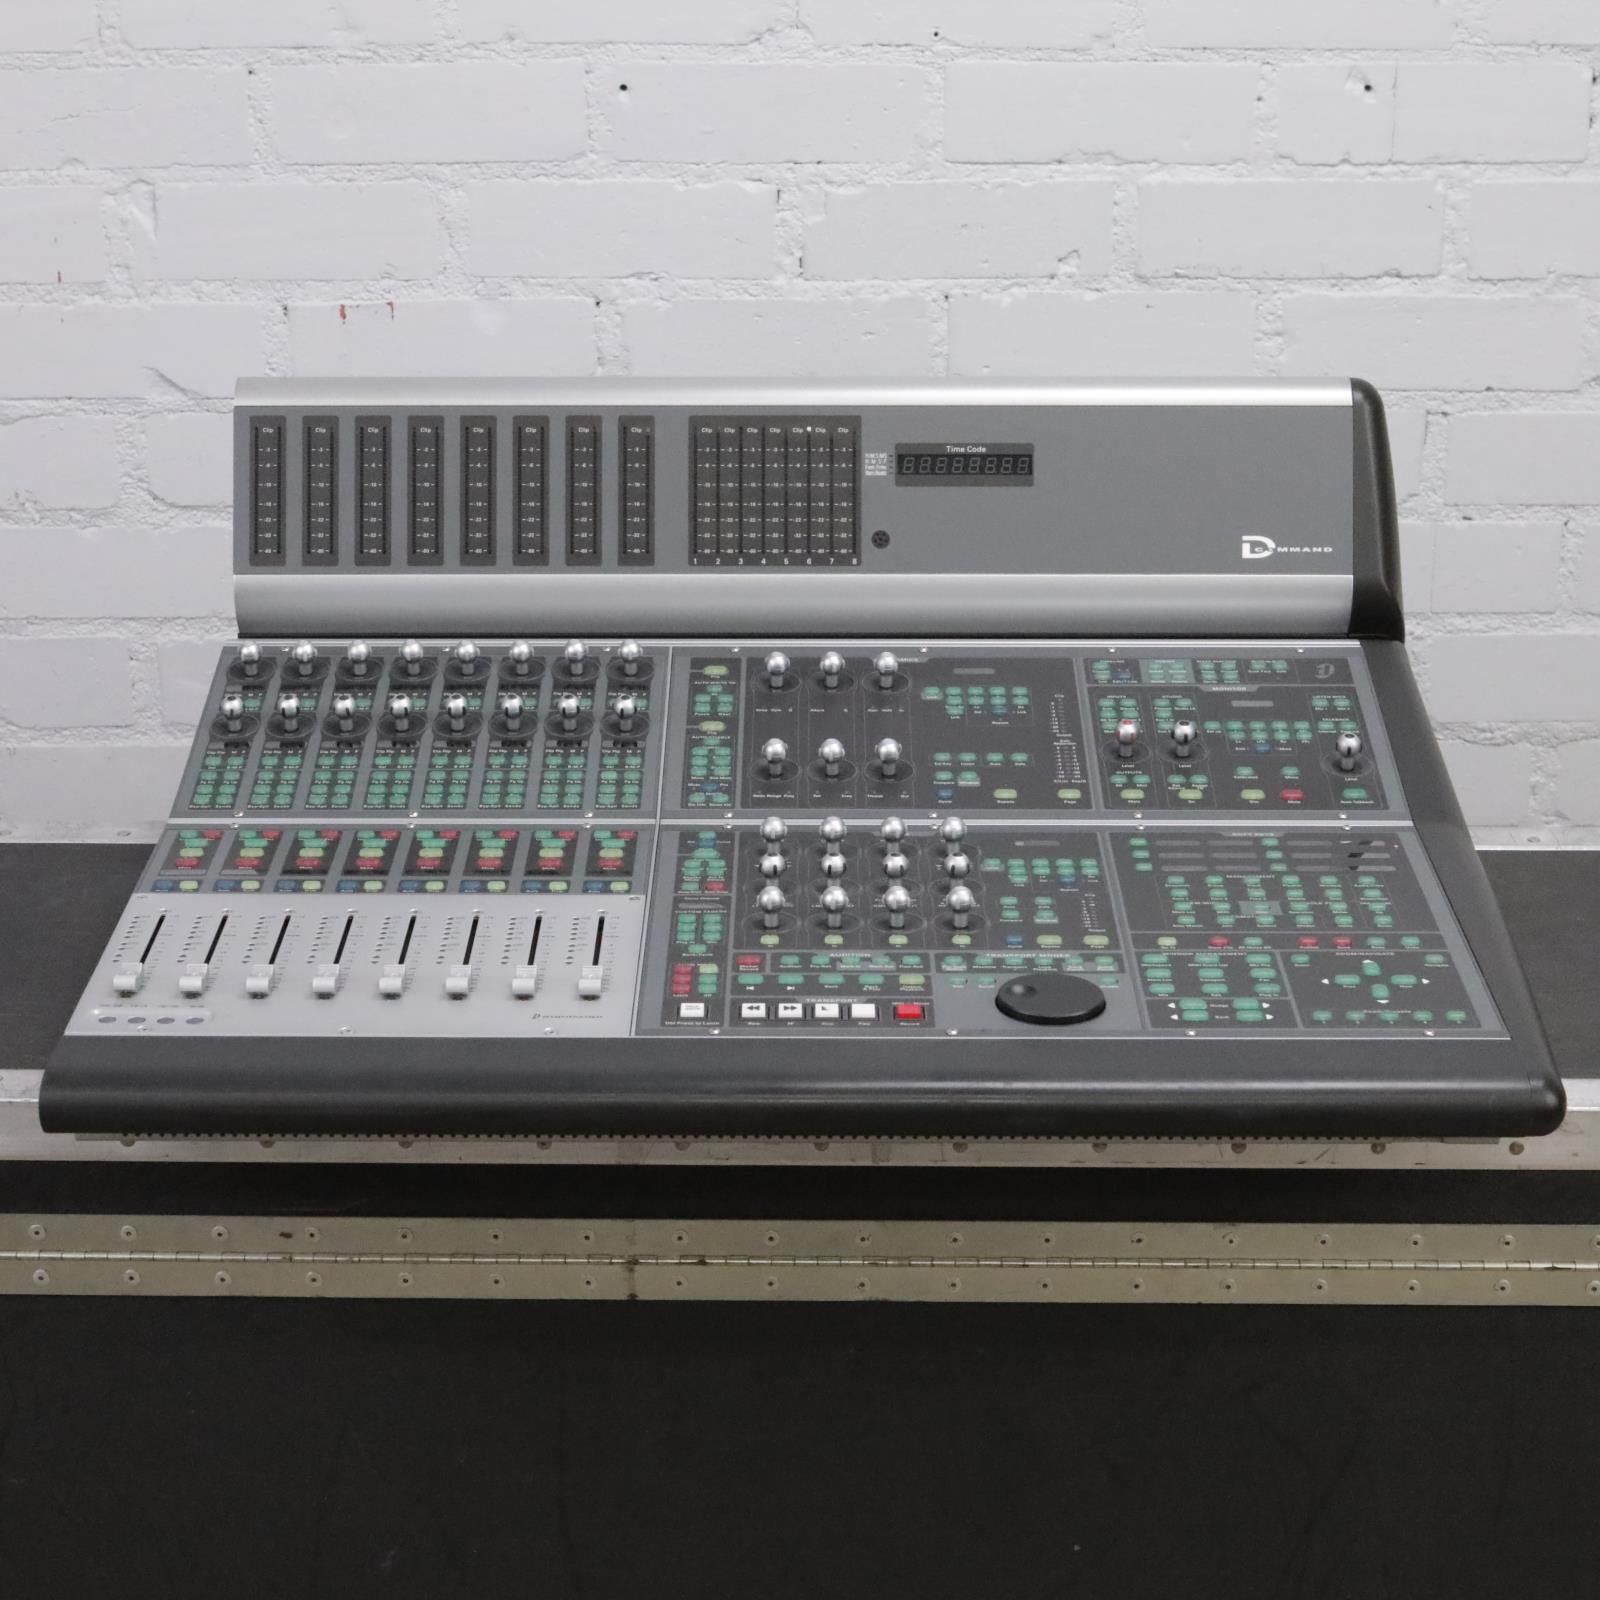 Digidesign D-Command Mixer Console Pro Tools Control Surface #44357